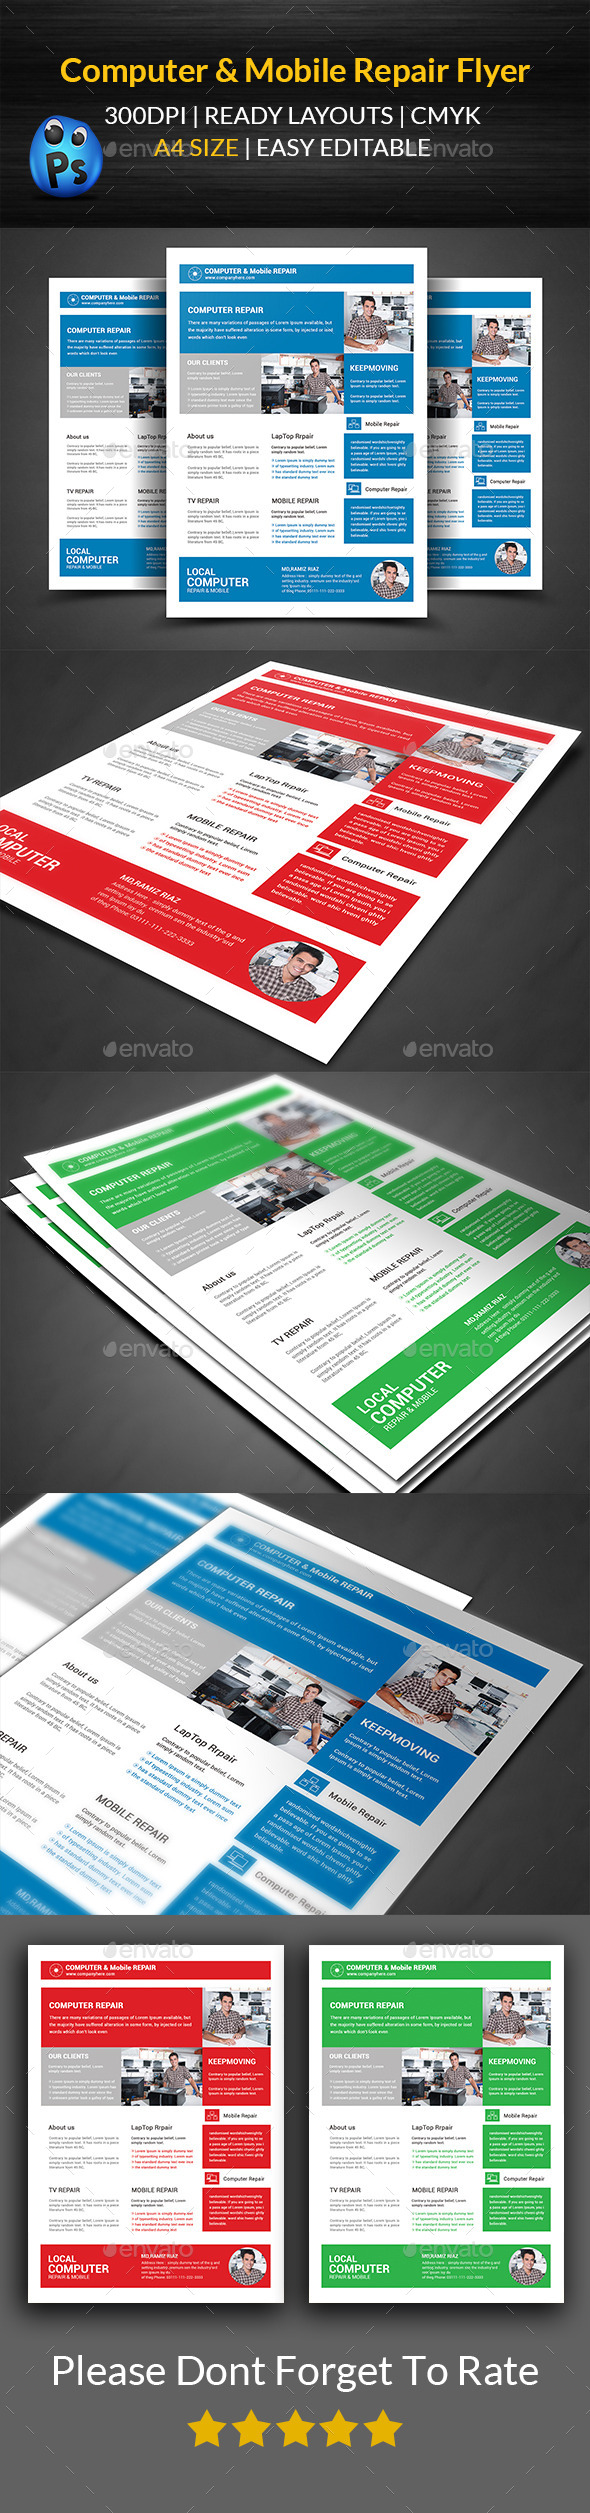 GraphicRiver Computer & Mobile Repair Flyer Template 11893928